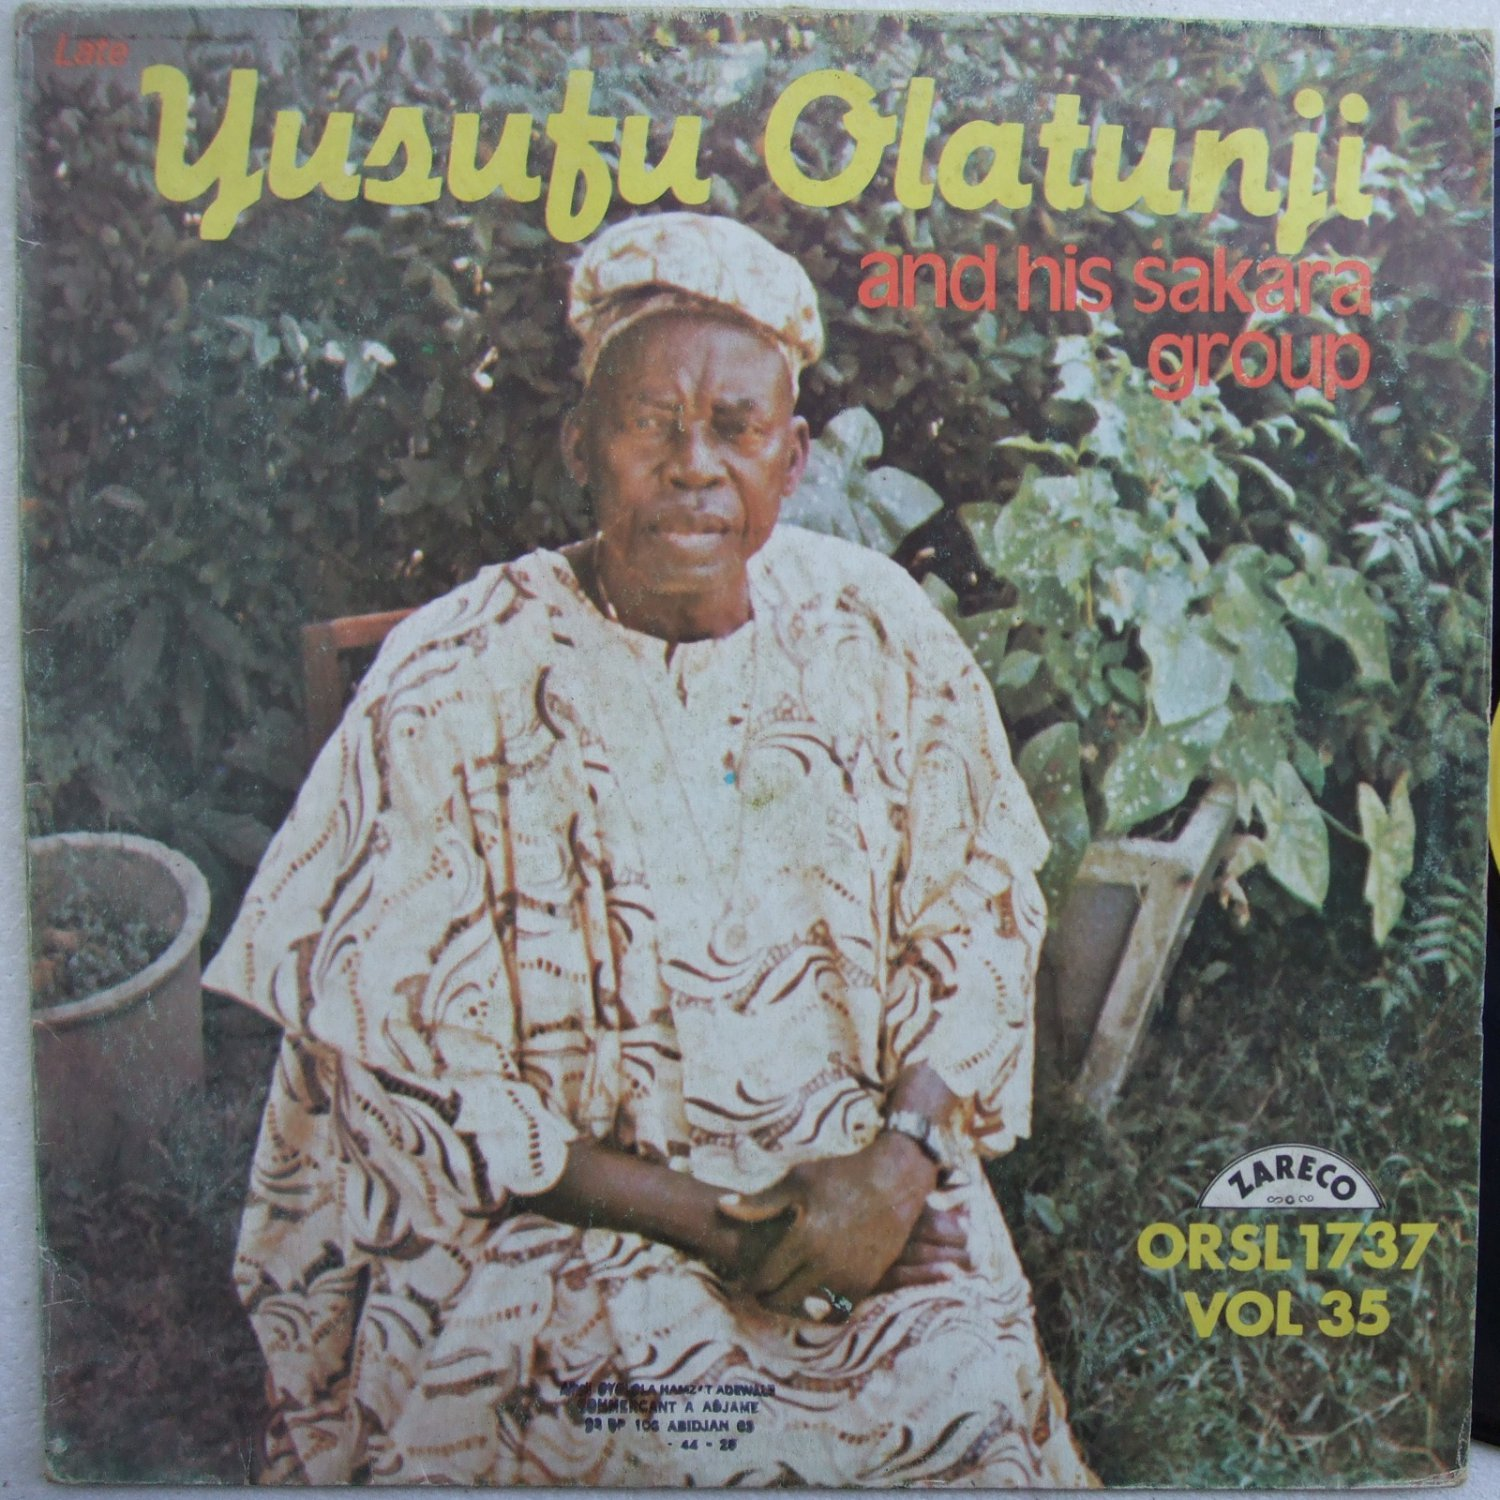 YUSUFU OLATUNJI & HIS SAKARA GROUP vol35 JUJU NIGERIA LP